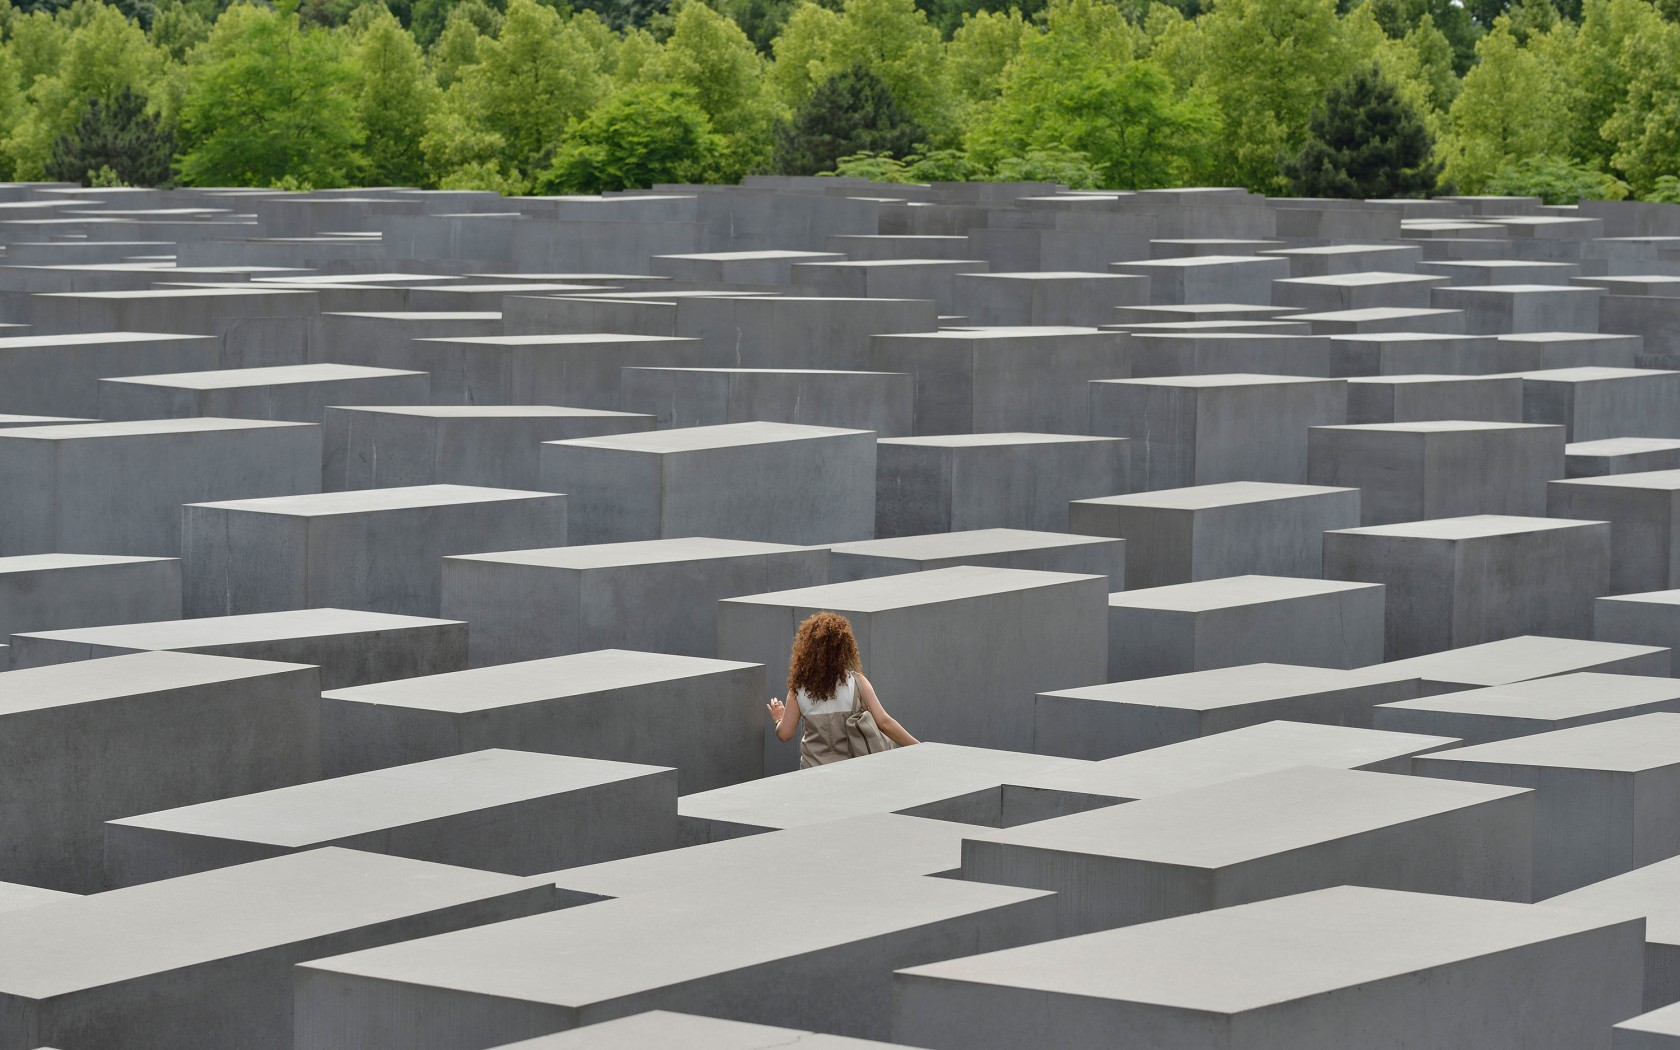 5Overs-Holocaust-Memorial-Berlin-DH6NGH-1680x1050